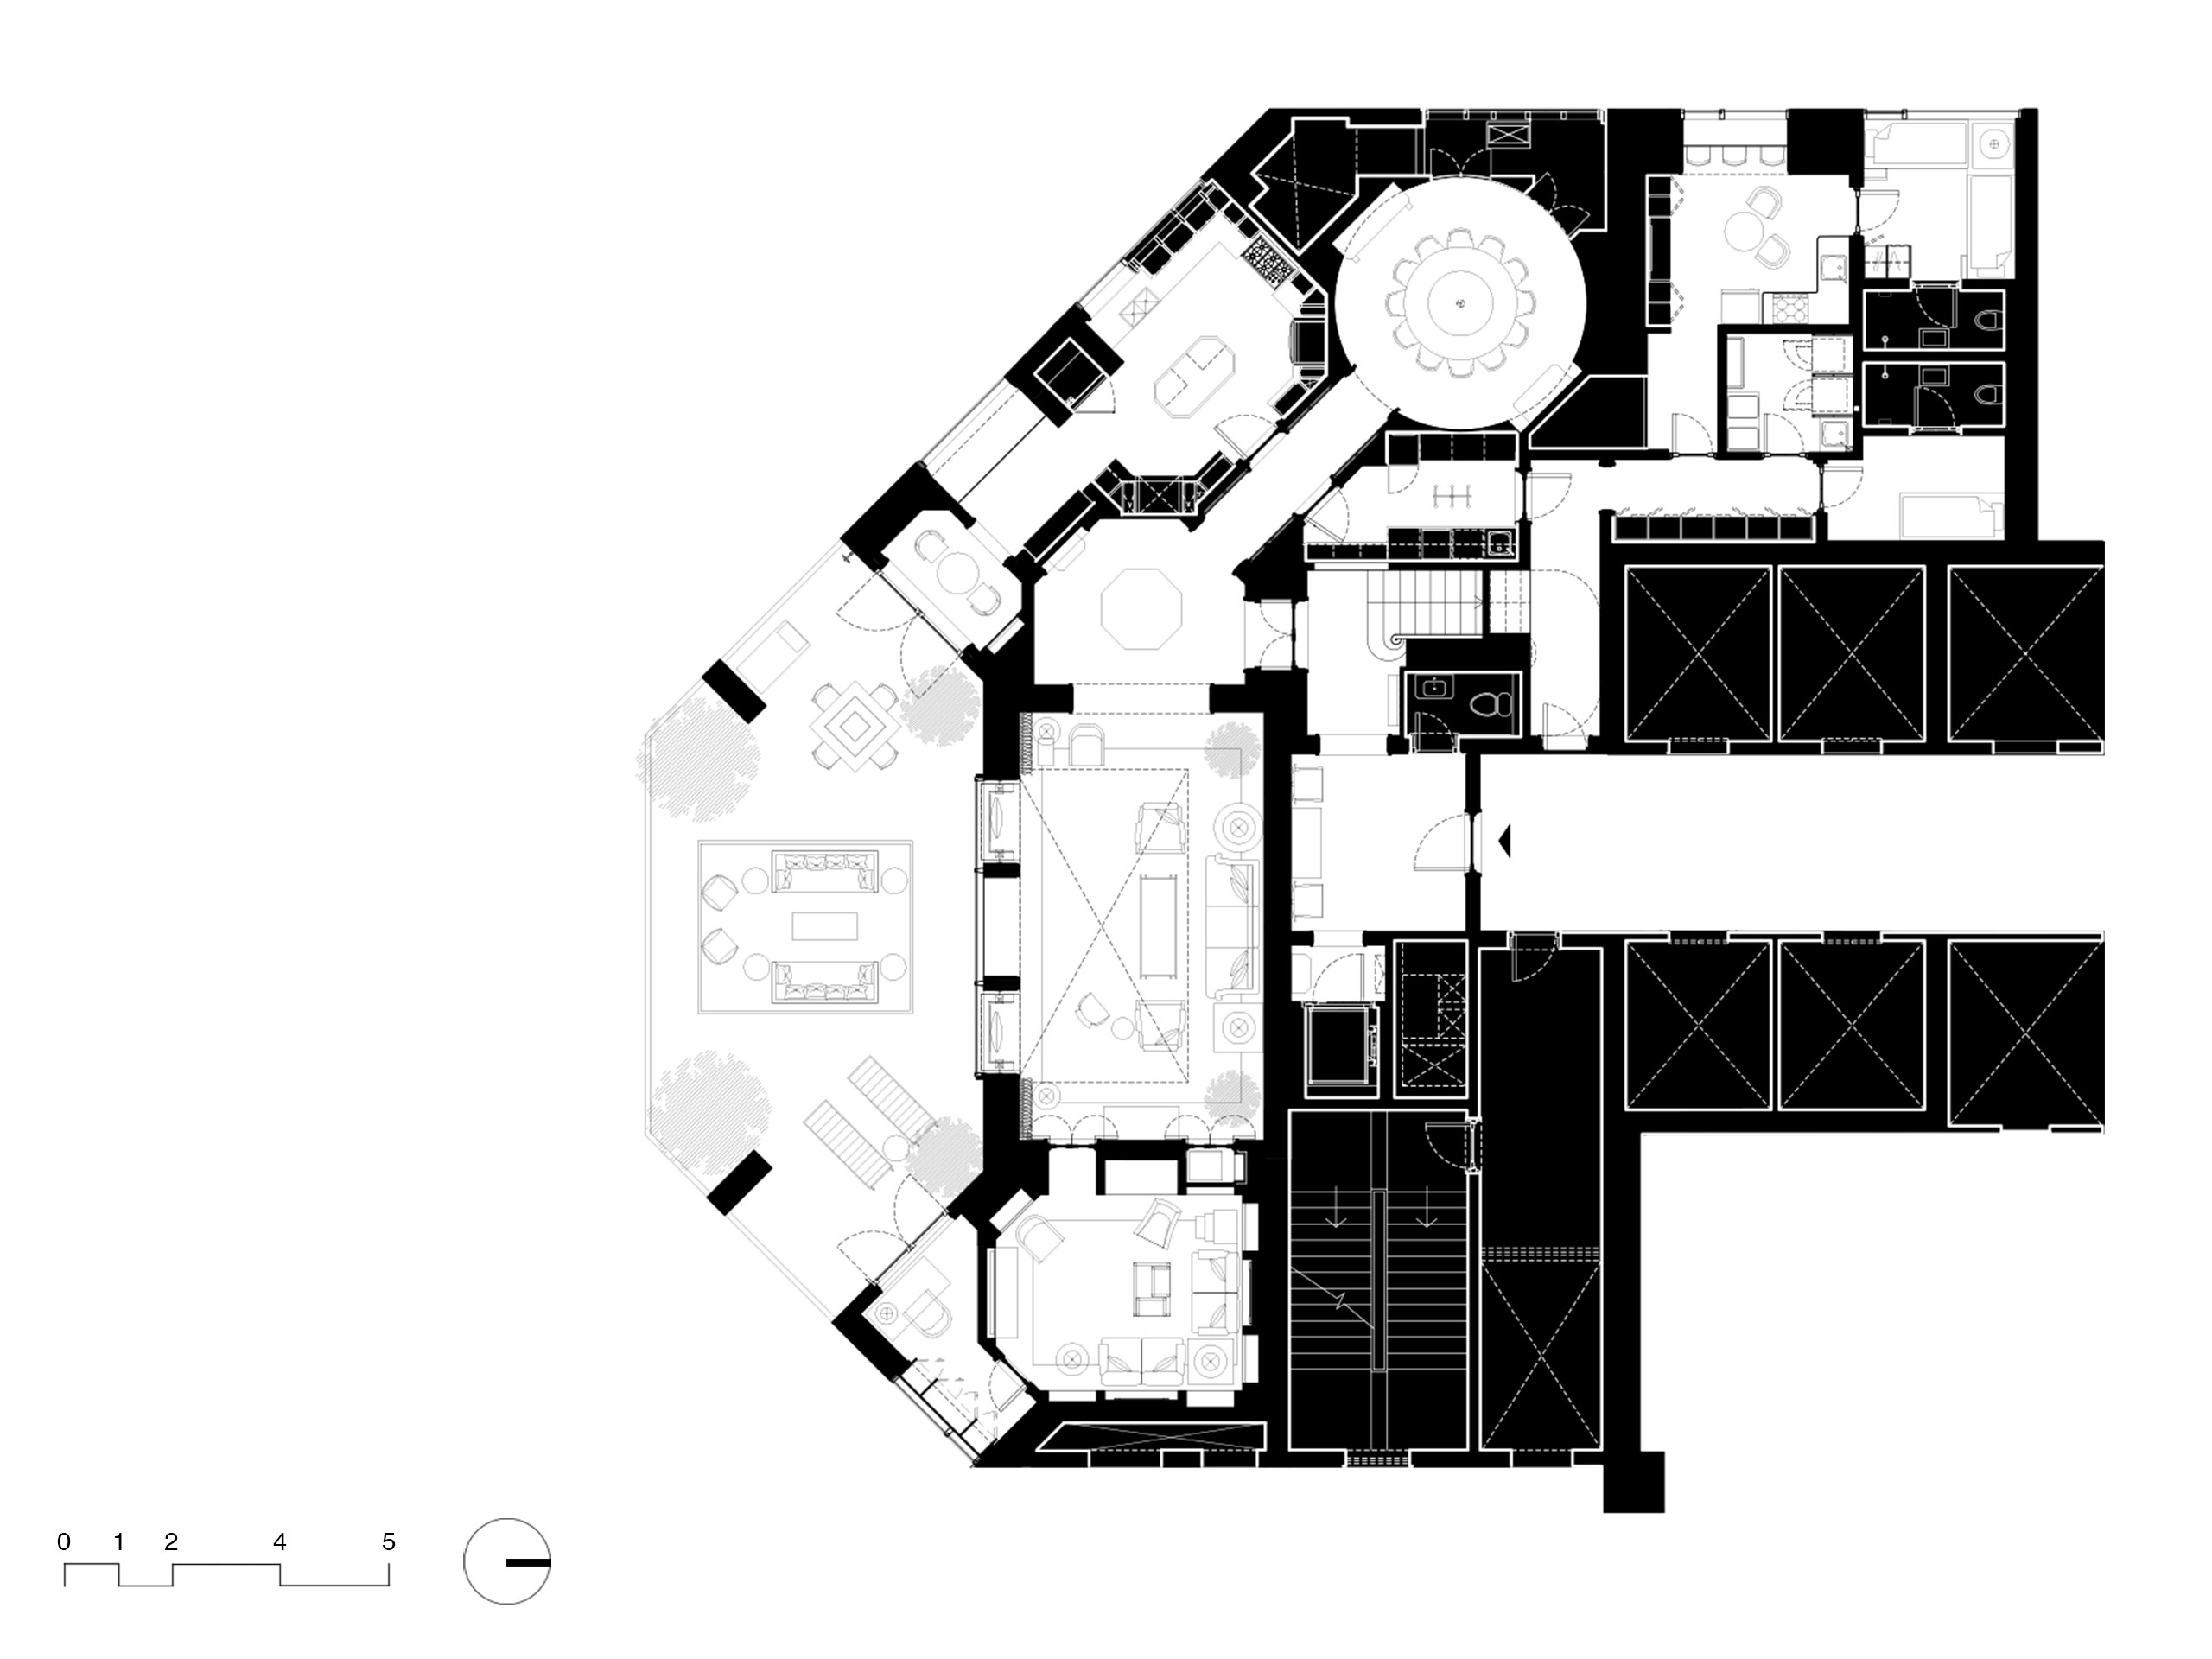 floor plan duplex apartment interior mumbai india